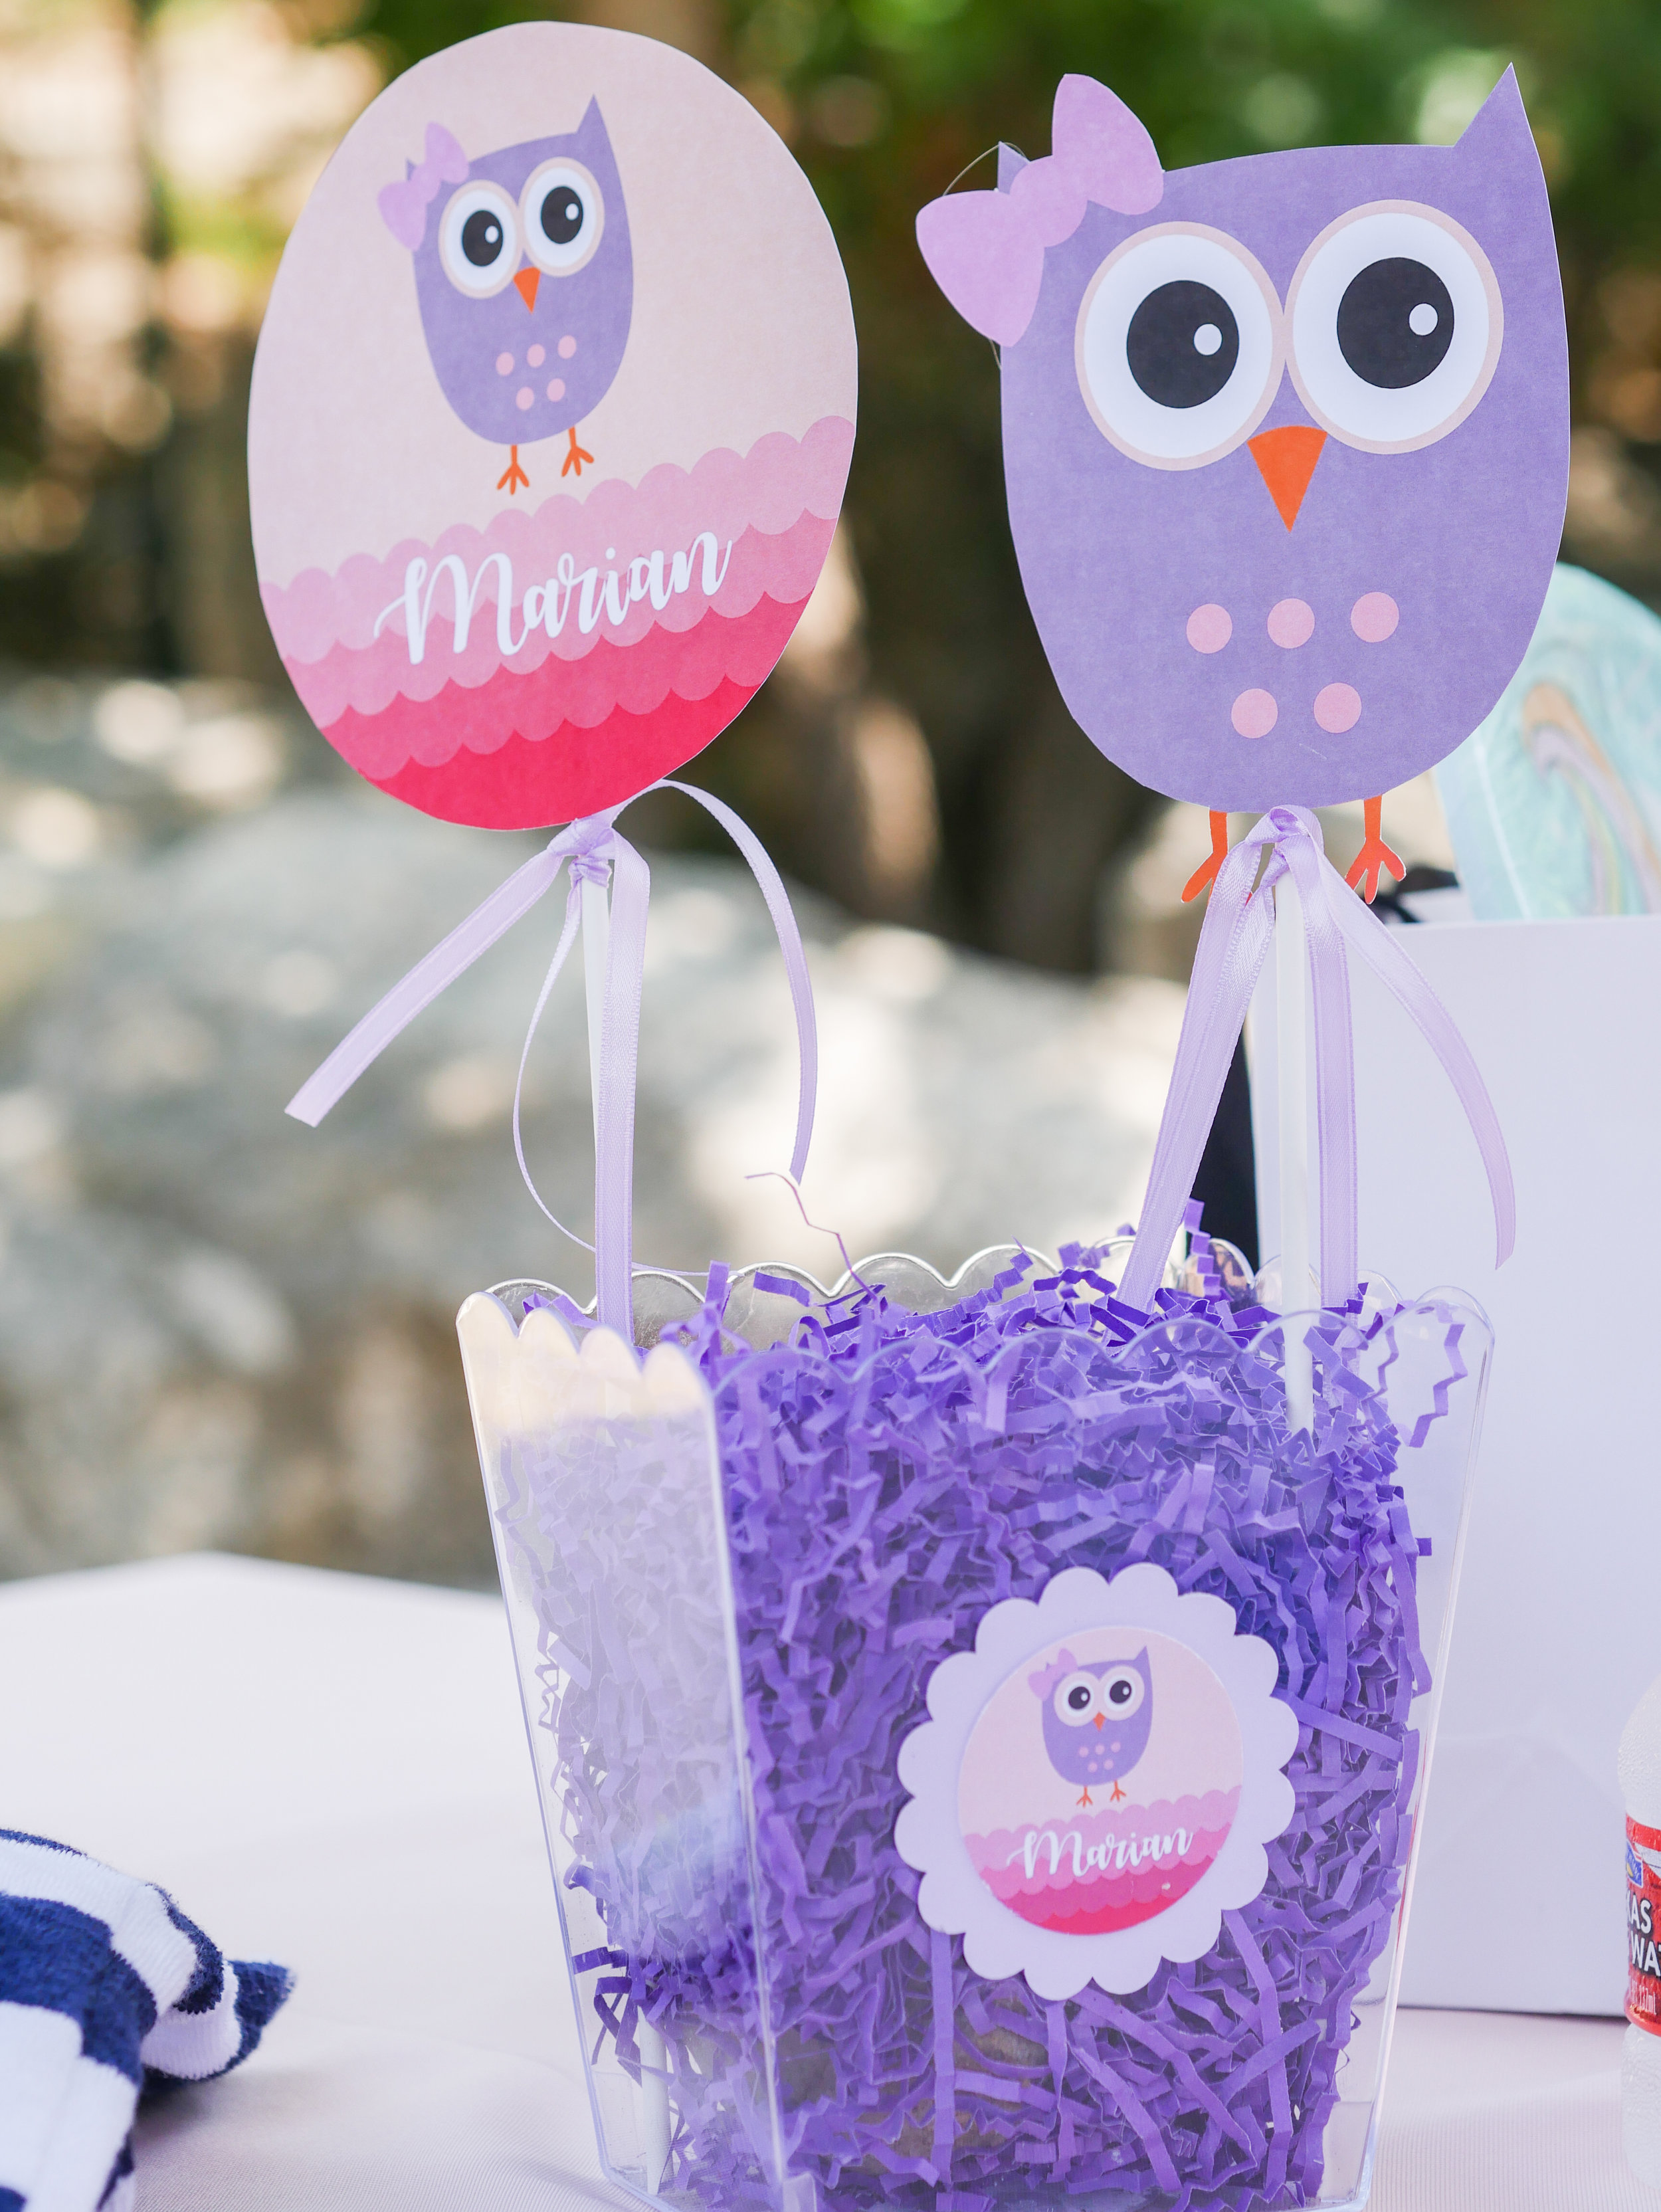 These easy to make owl party centerpieces will add a pop of color to your tables. Full details to DIY these Owl Centerpieces can be found on www.minteventdesign.com - it's just one of the many creative party ideas in the Owl First Birthday Party by party stylist Mint Event Design in Austin, Texas. #birthdayparty #partyideas #partyinspiration #owl #centerpieces #firstbirthday